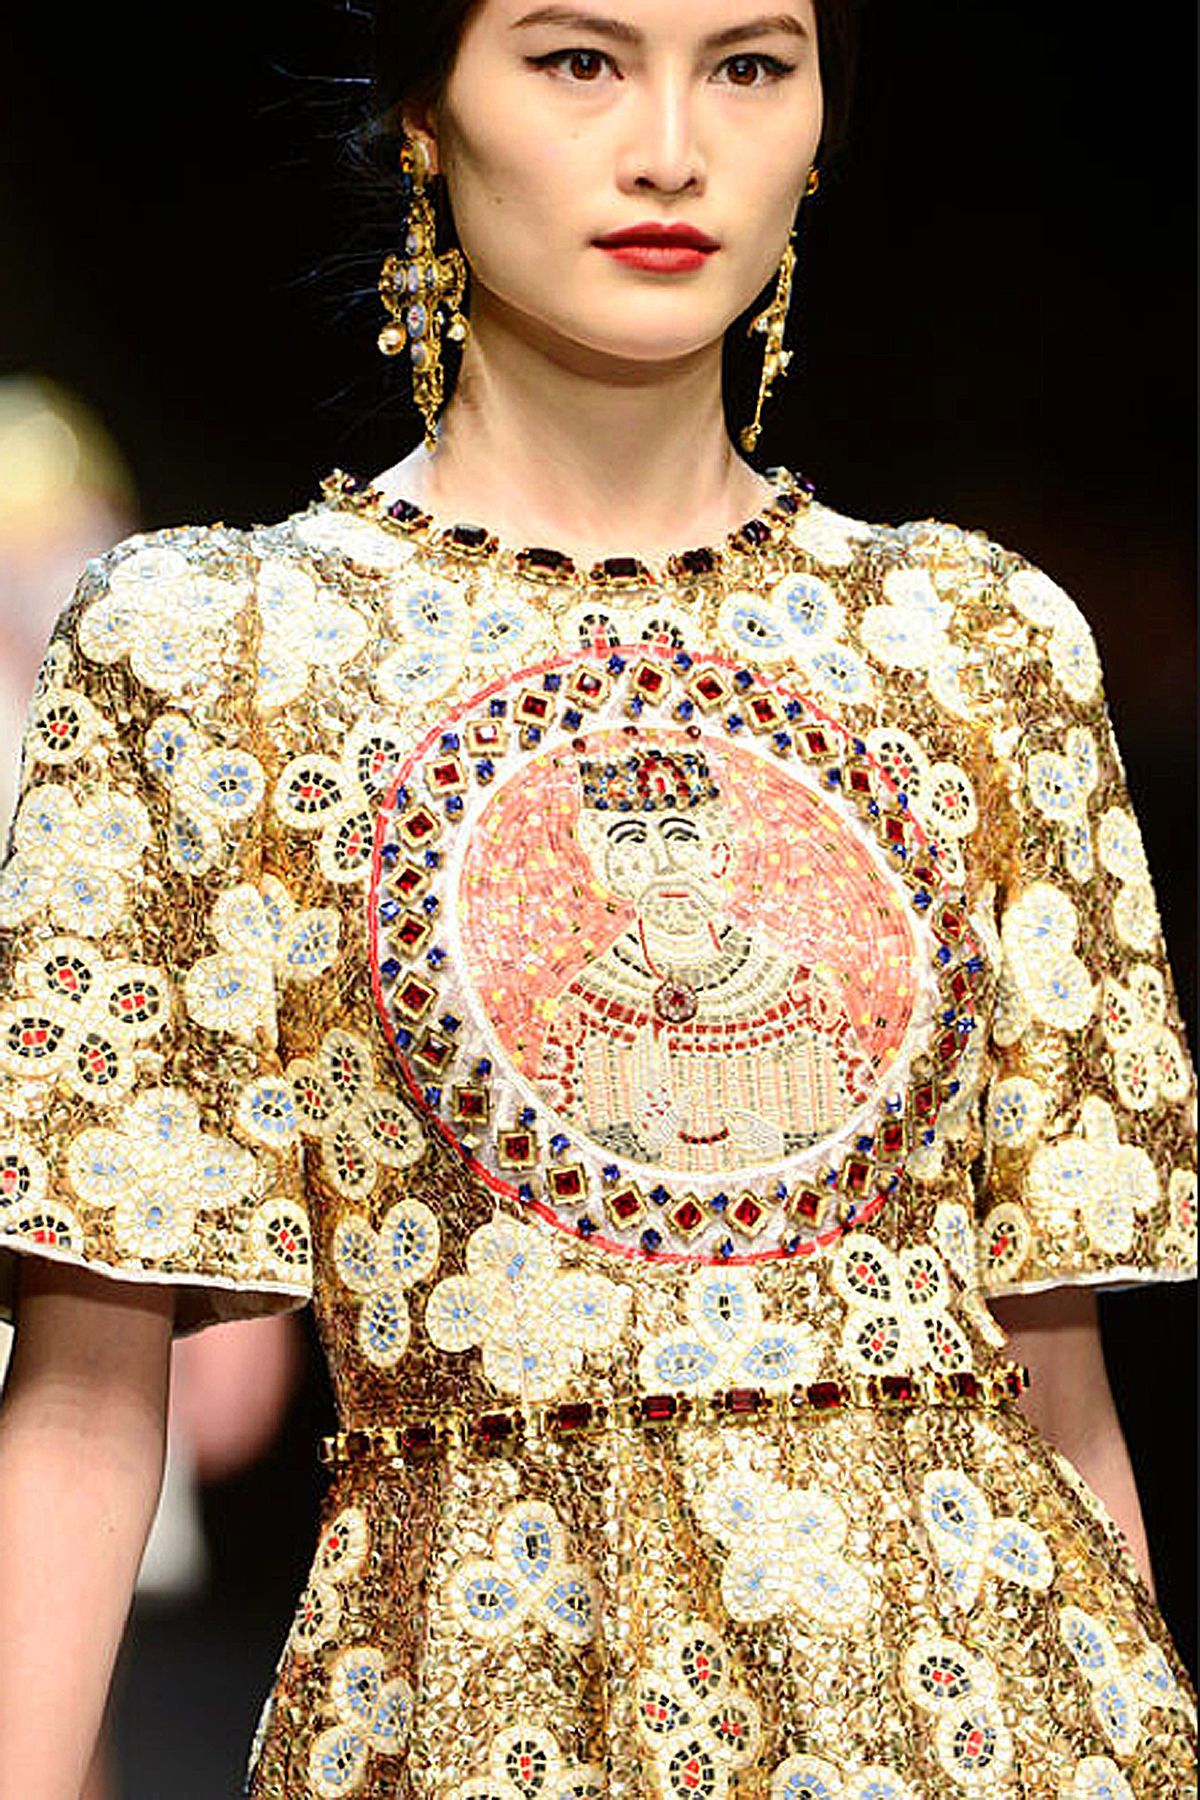 Dolce & Gabbana Fall 2013 rtw collection  (detail) (style.com) via Très Haute Diva